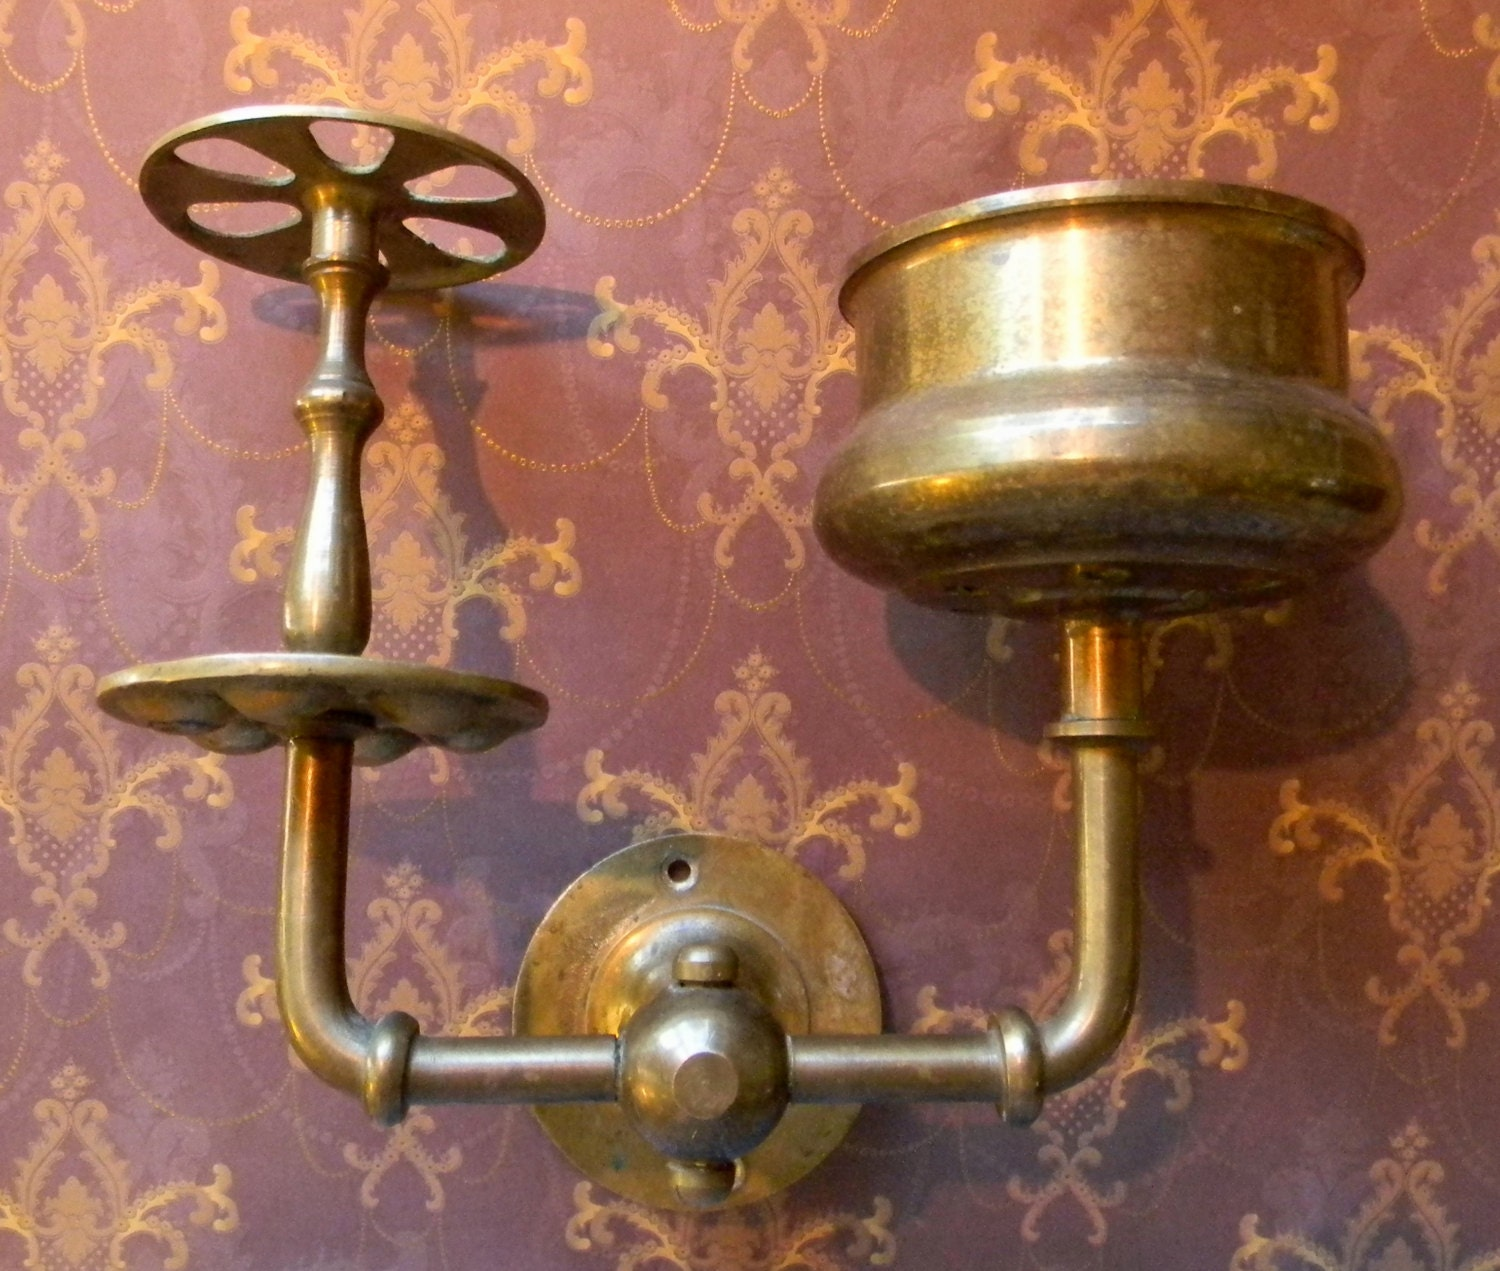 Amazing Antique Solid Brass Toothbrush Holder With Cup Holder